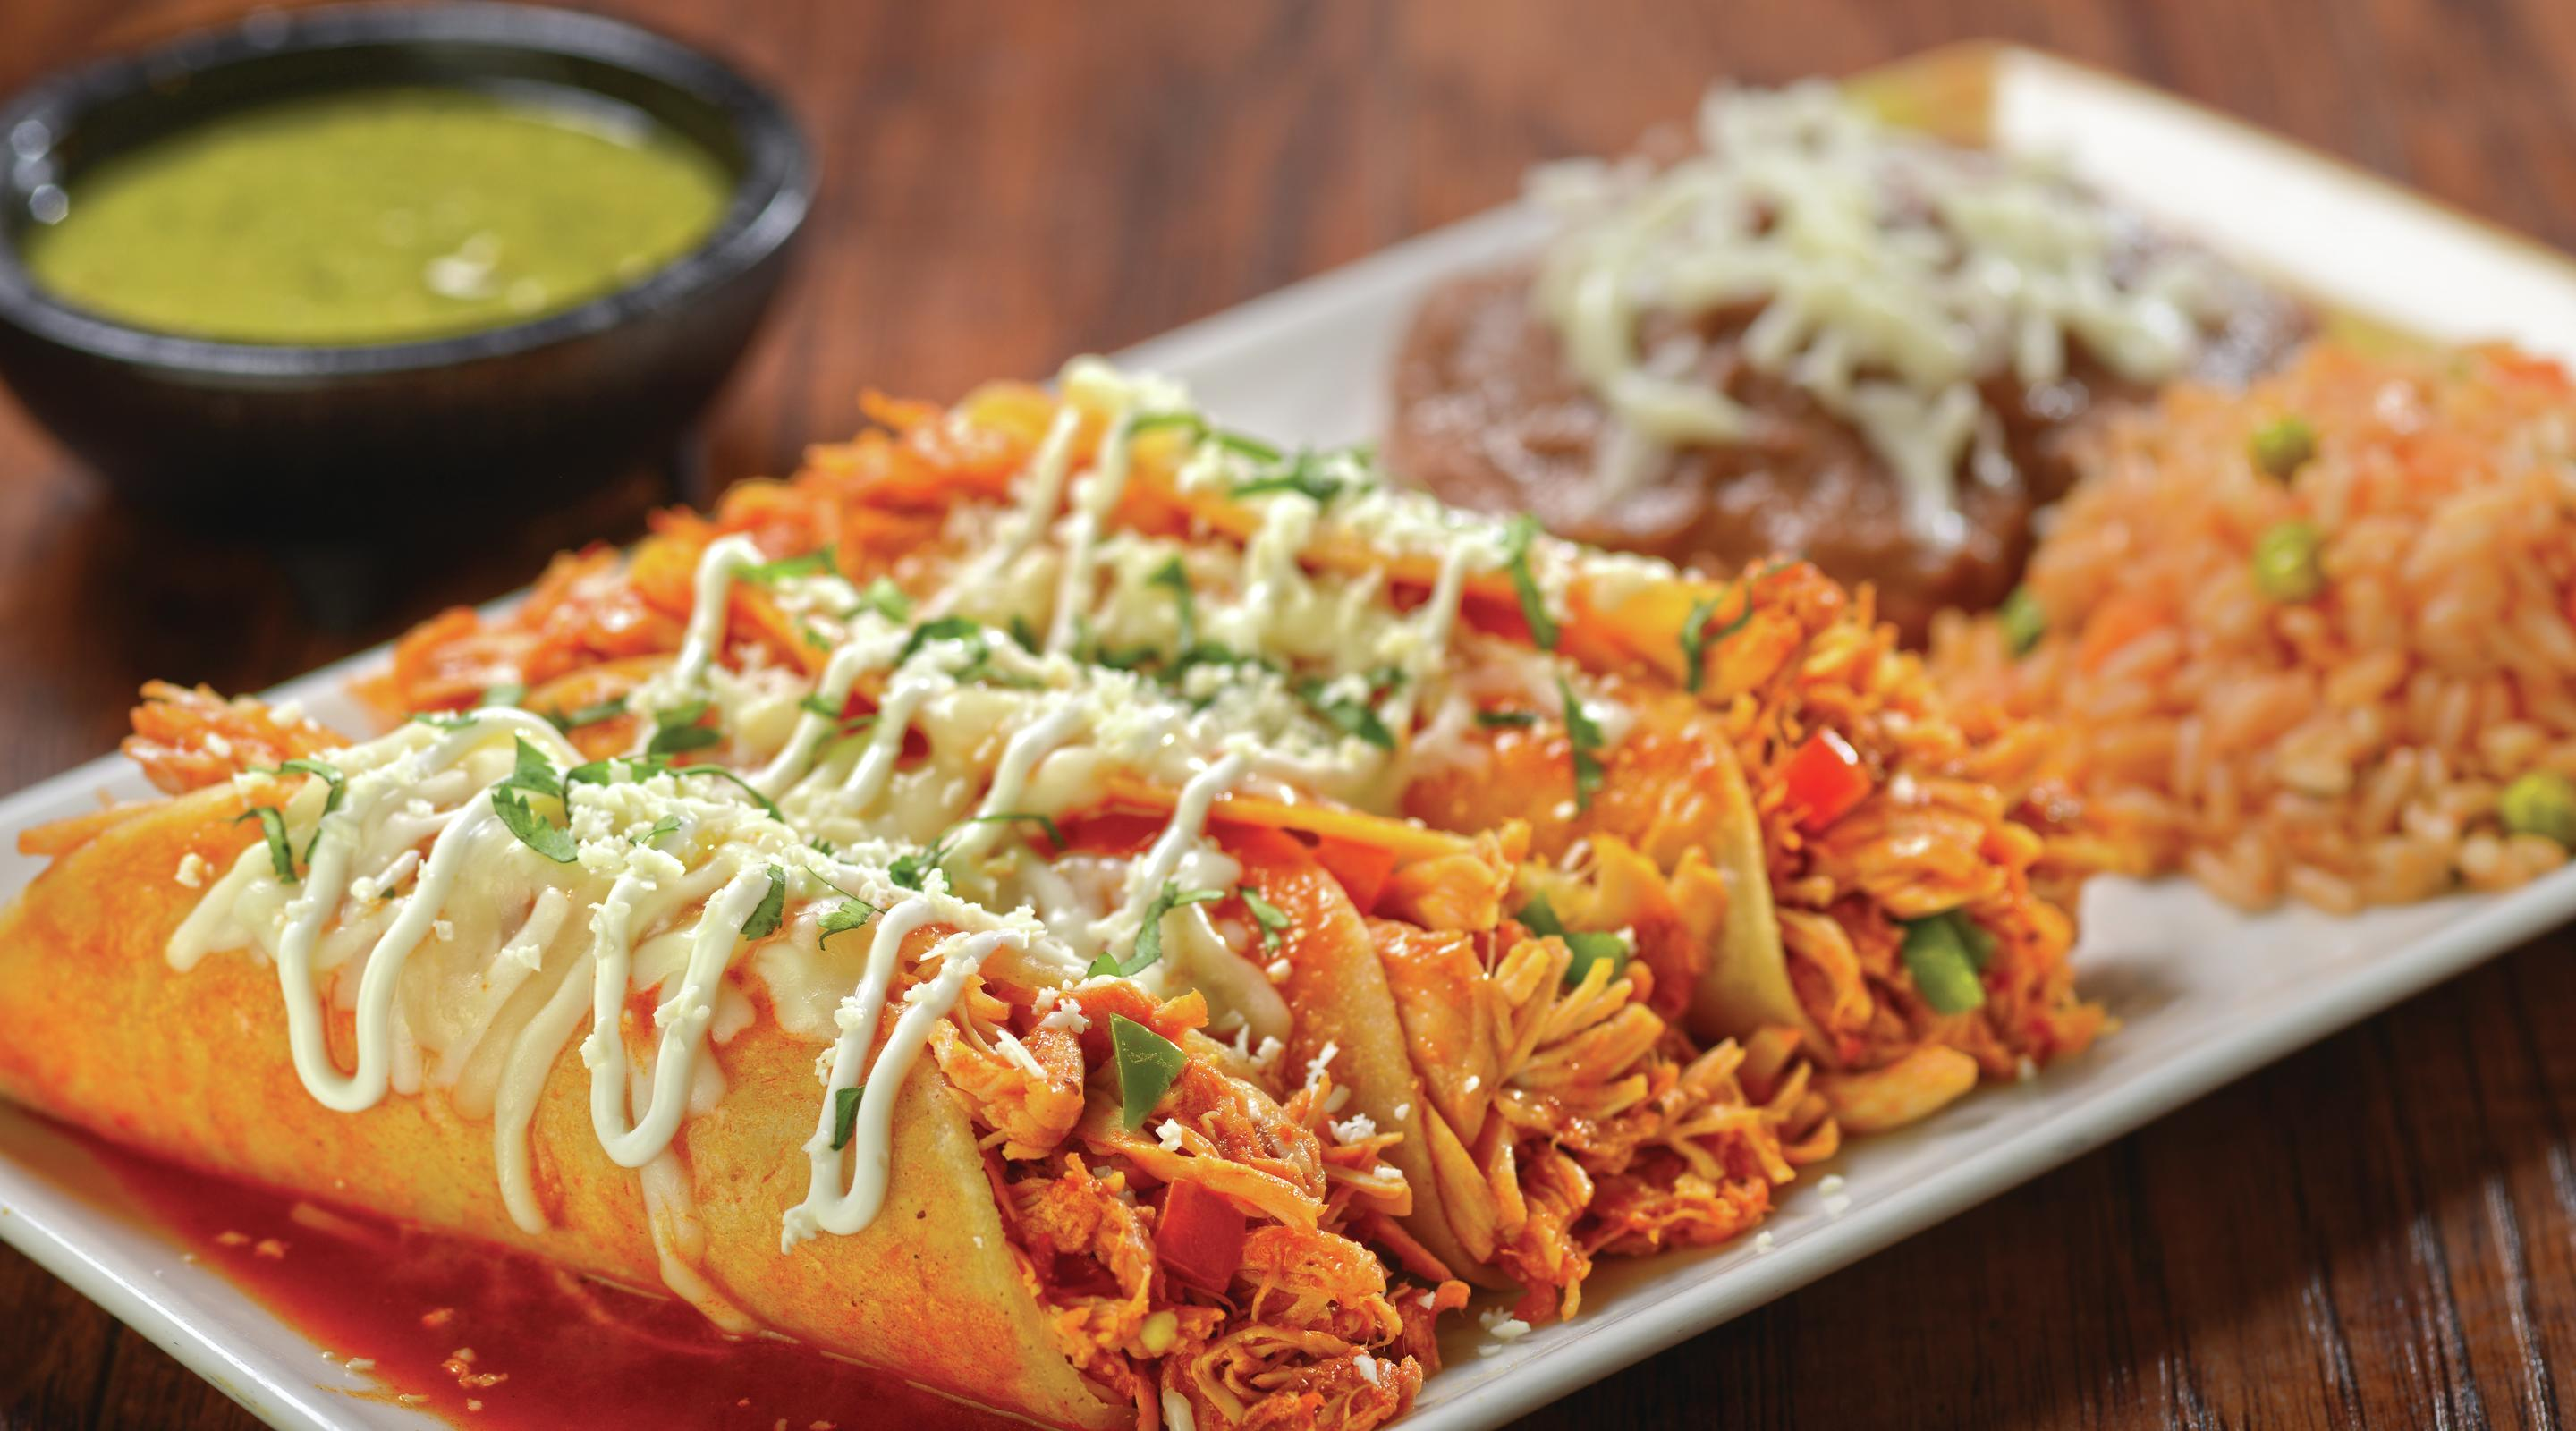 Spicy Southwestern fare can be yours at Gonzalez Y Gonzalez, featuring an authentic tequila bar